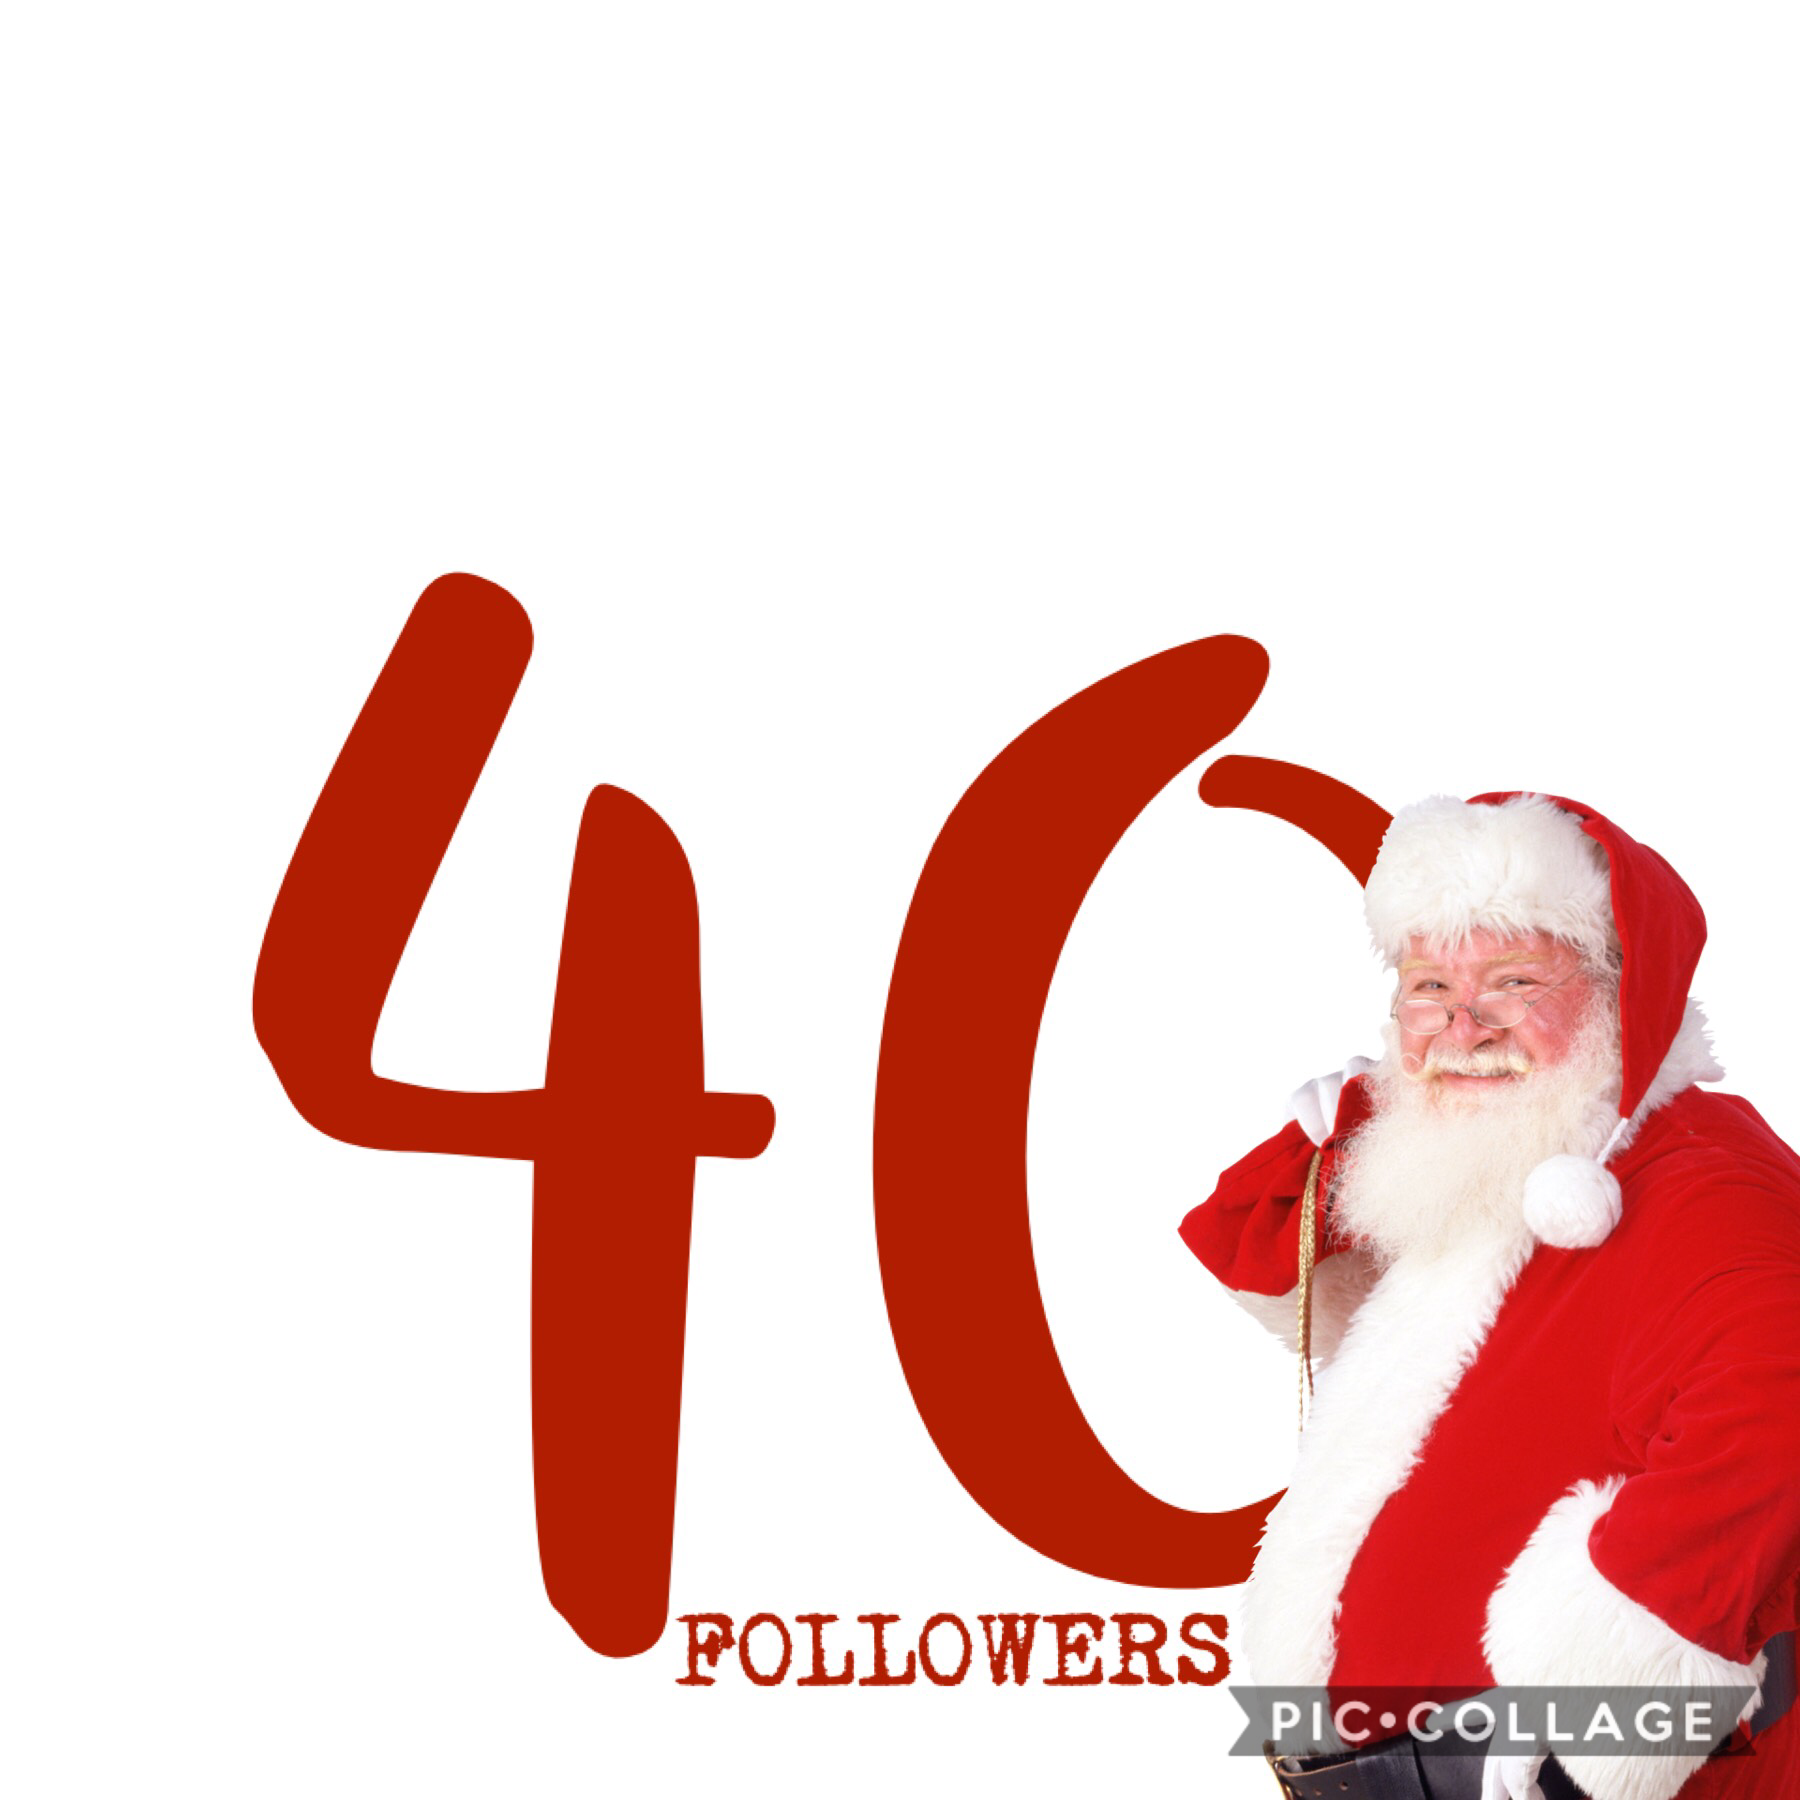 thank you so much for forty followers. It's amazing I've gotten to this point on a small collage account. I'm literally dumbfounded right now. I wish you all the merriest, most meaningful Christmas you've ever had. If you don't celebrate Christmas, happy